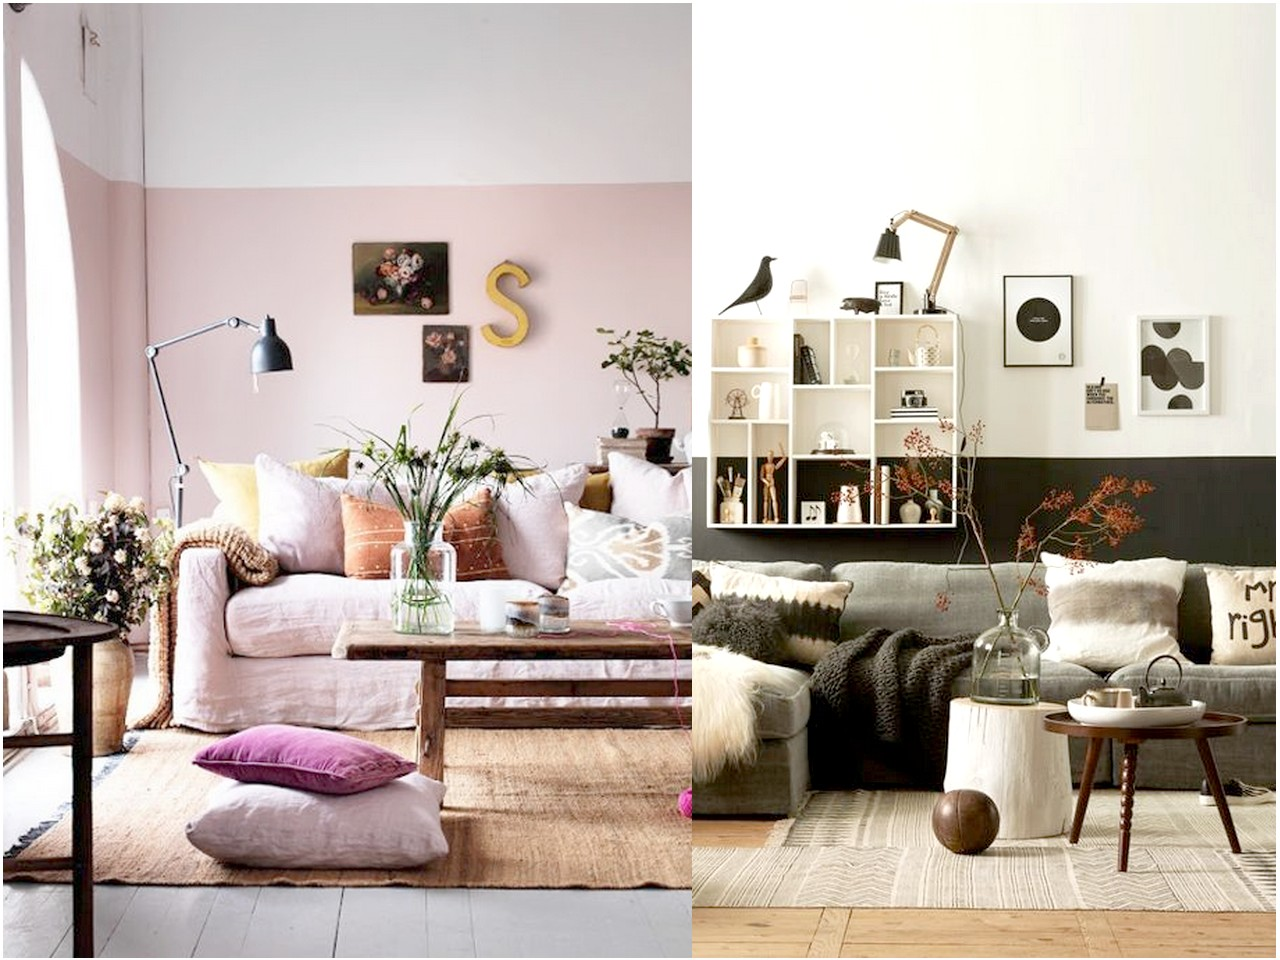 7 ideas para decorar con poco dinero el sal n de tu casa - Decorar pared de salon ...